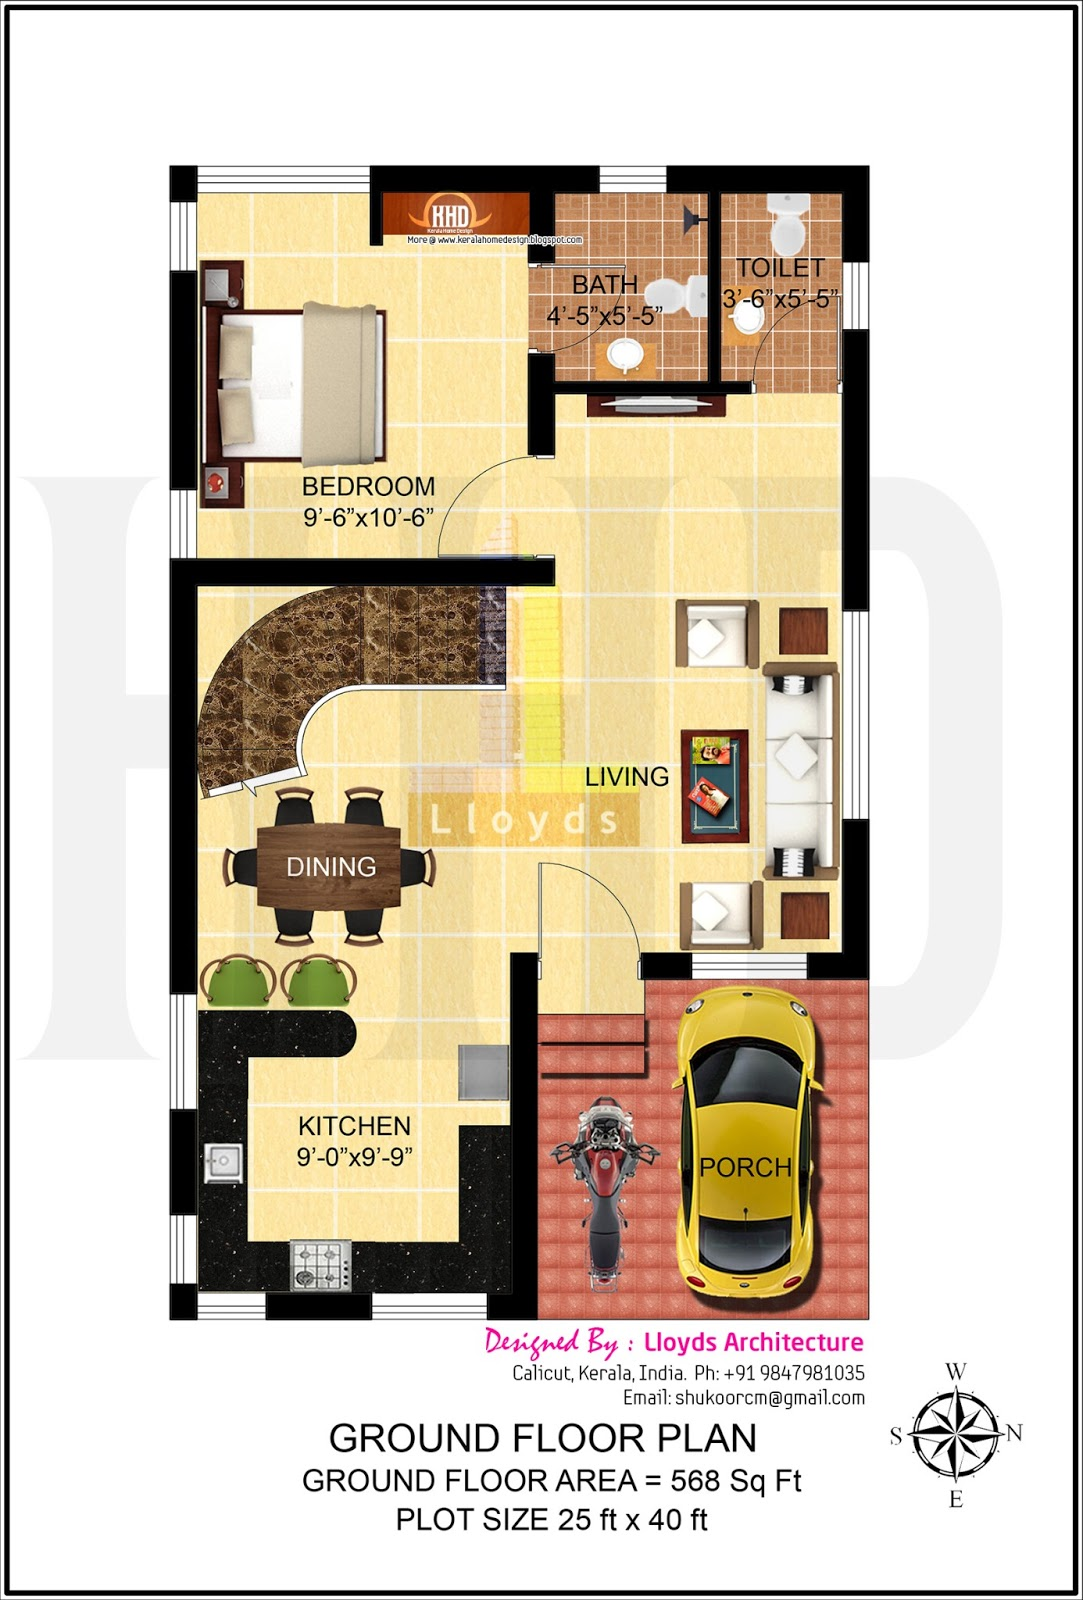 4 bedroom house plan in less that 3 cents home kerala plans for Ground floor house design